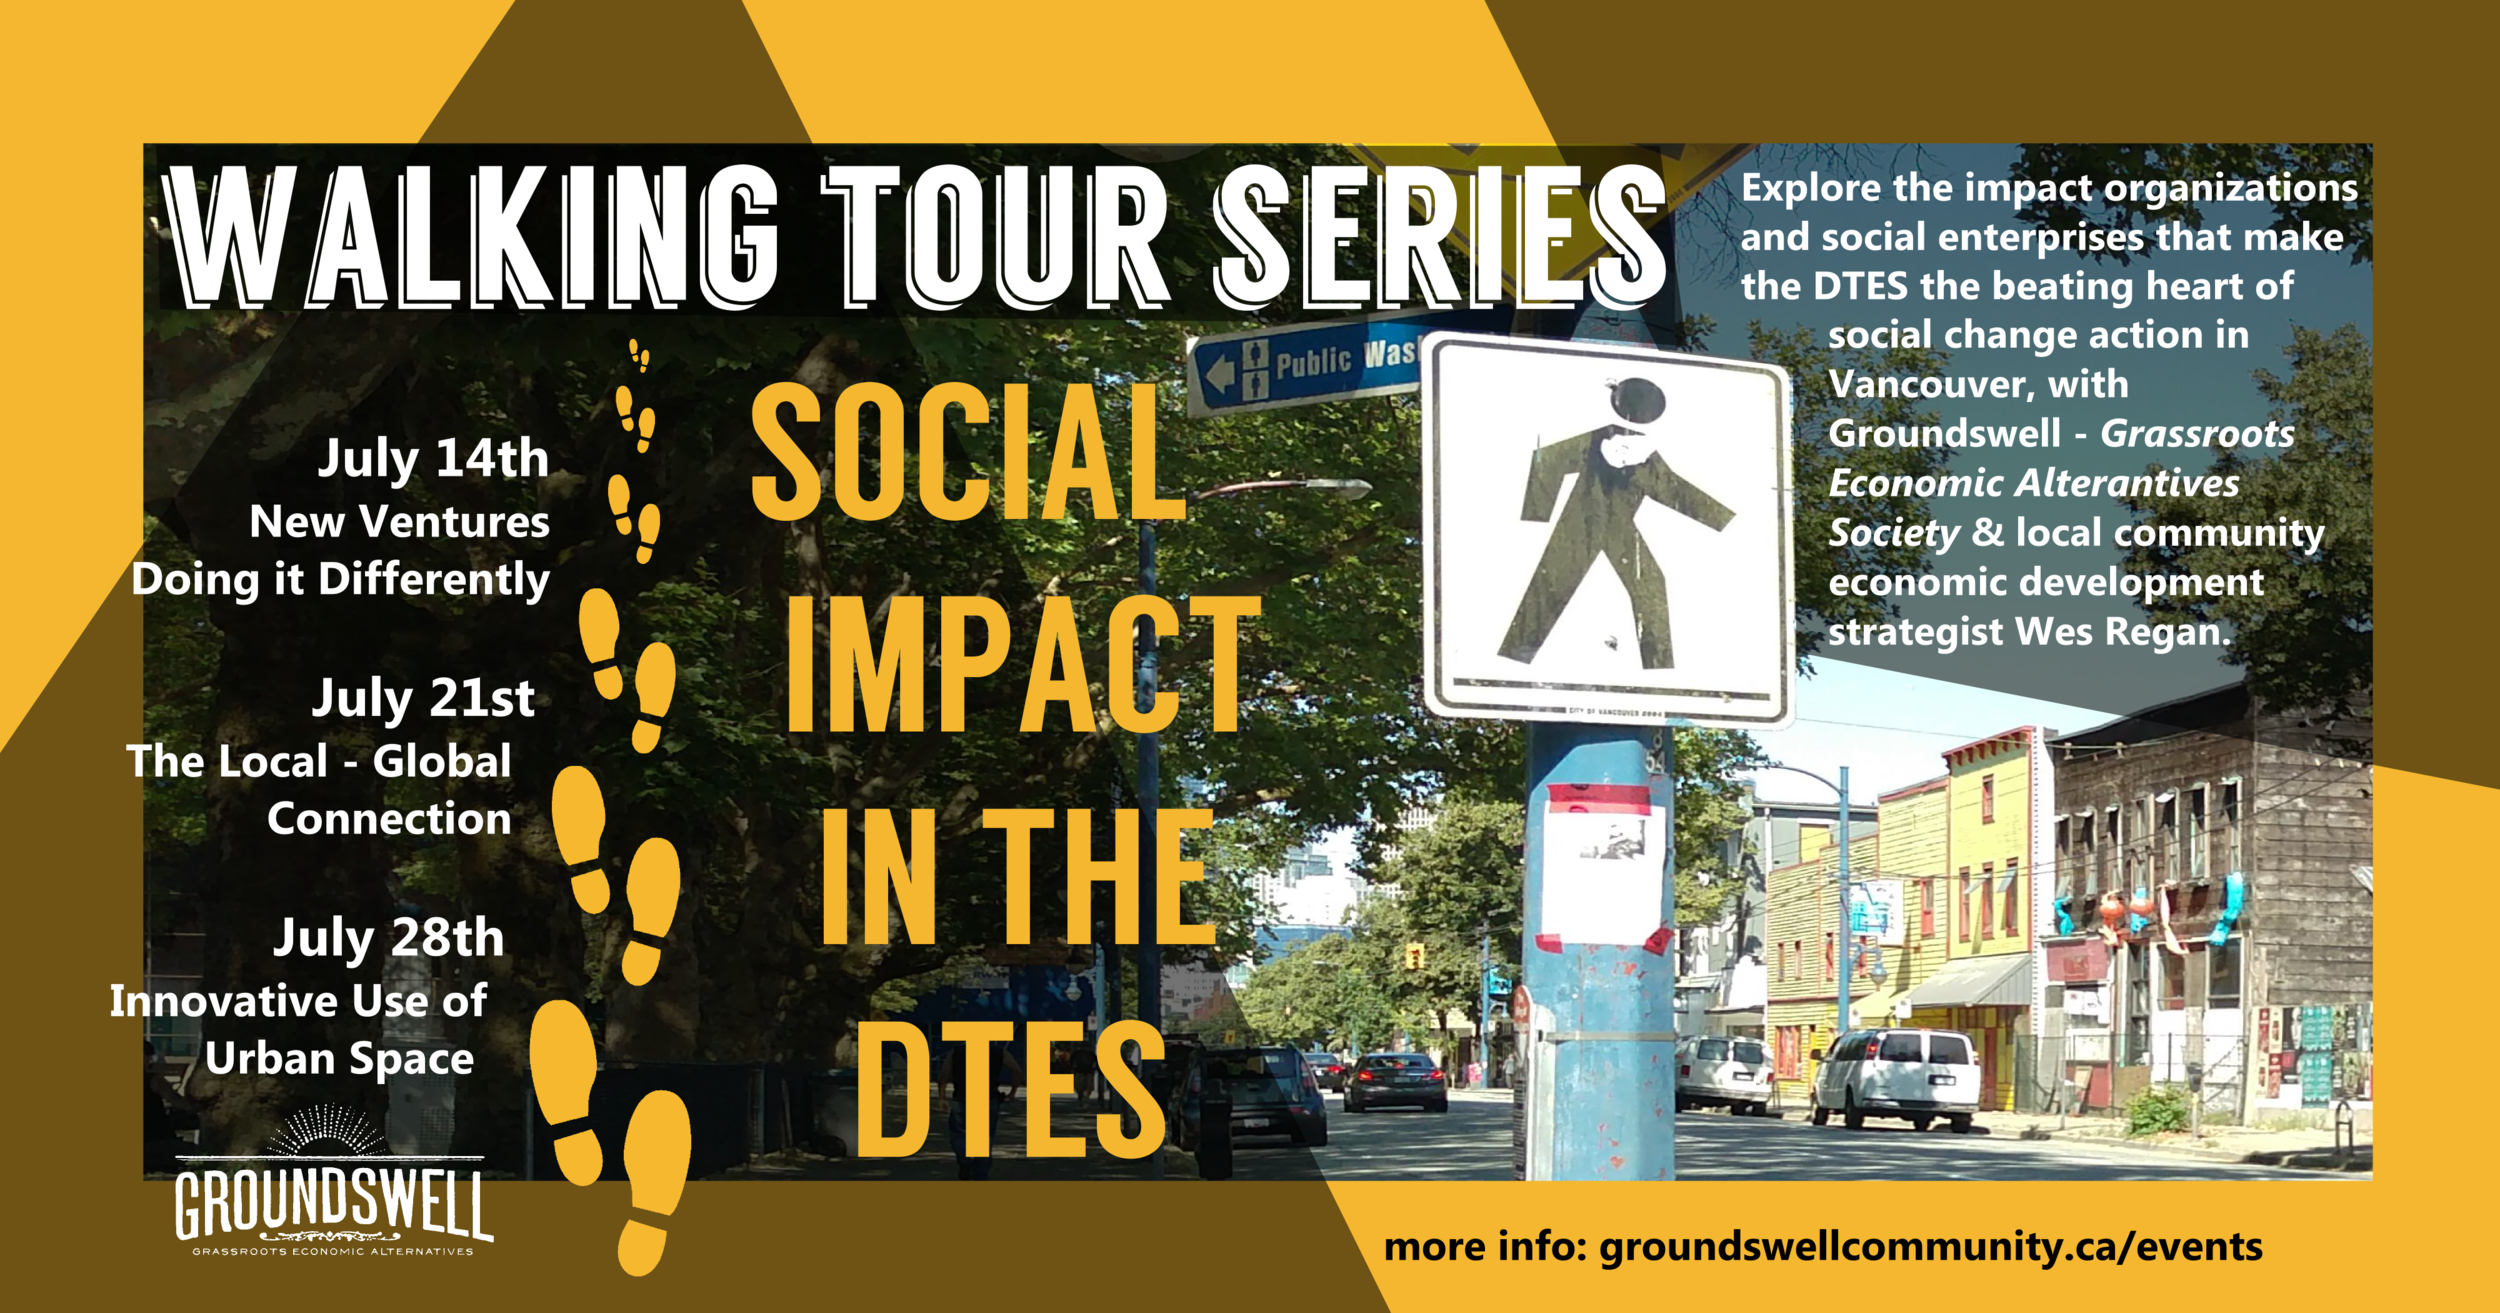 walking-tour-FB-share.png